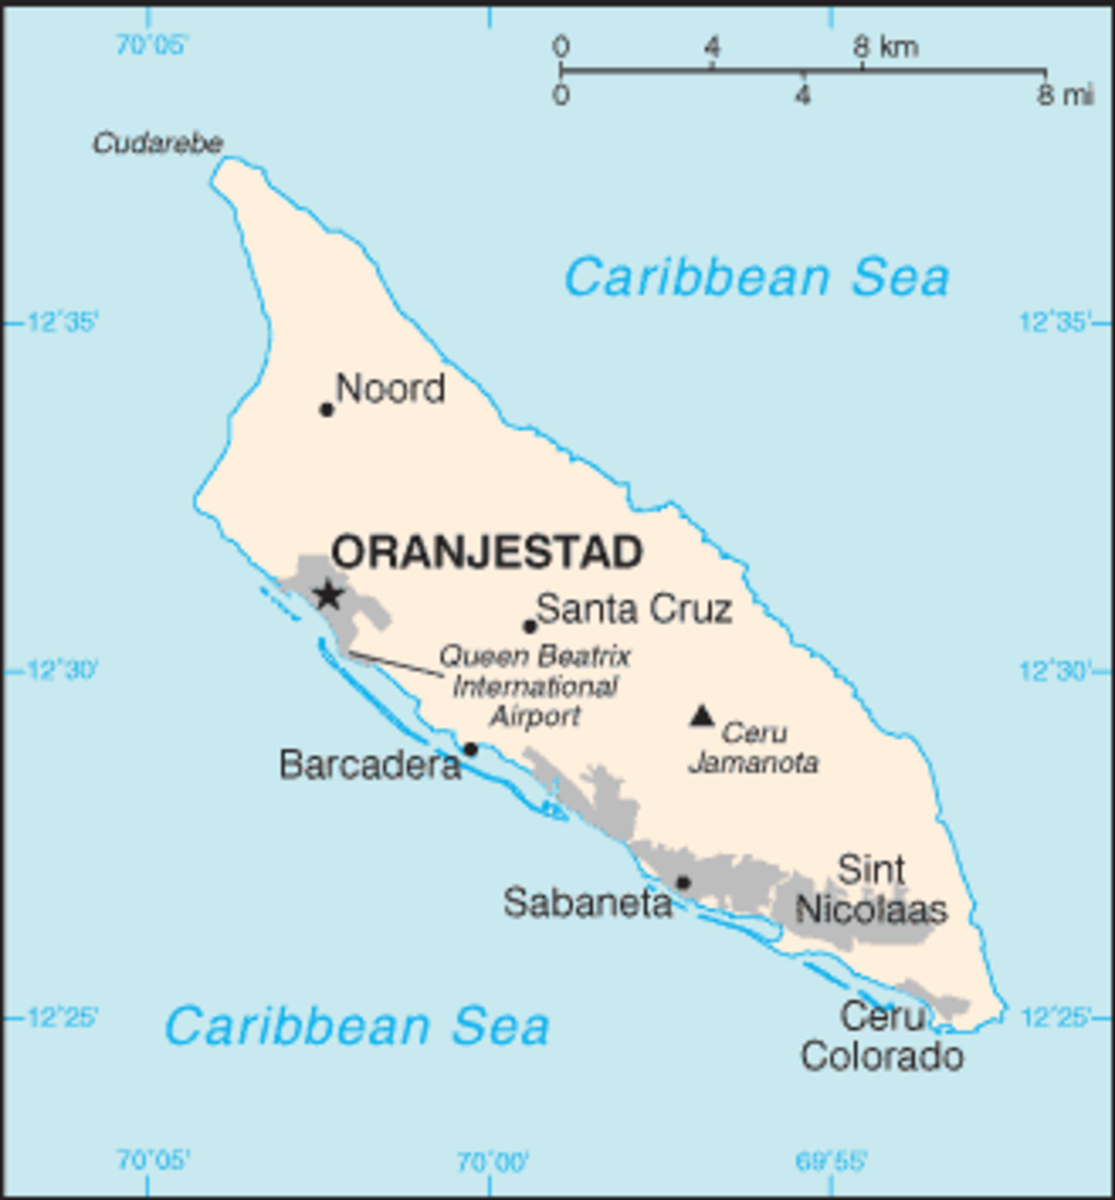 Map of Aruba with the location of its capital city Oranjestad